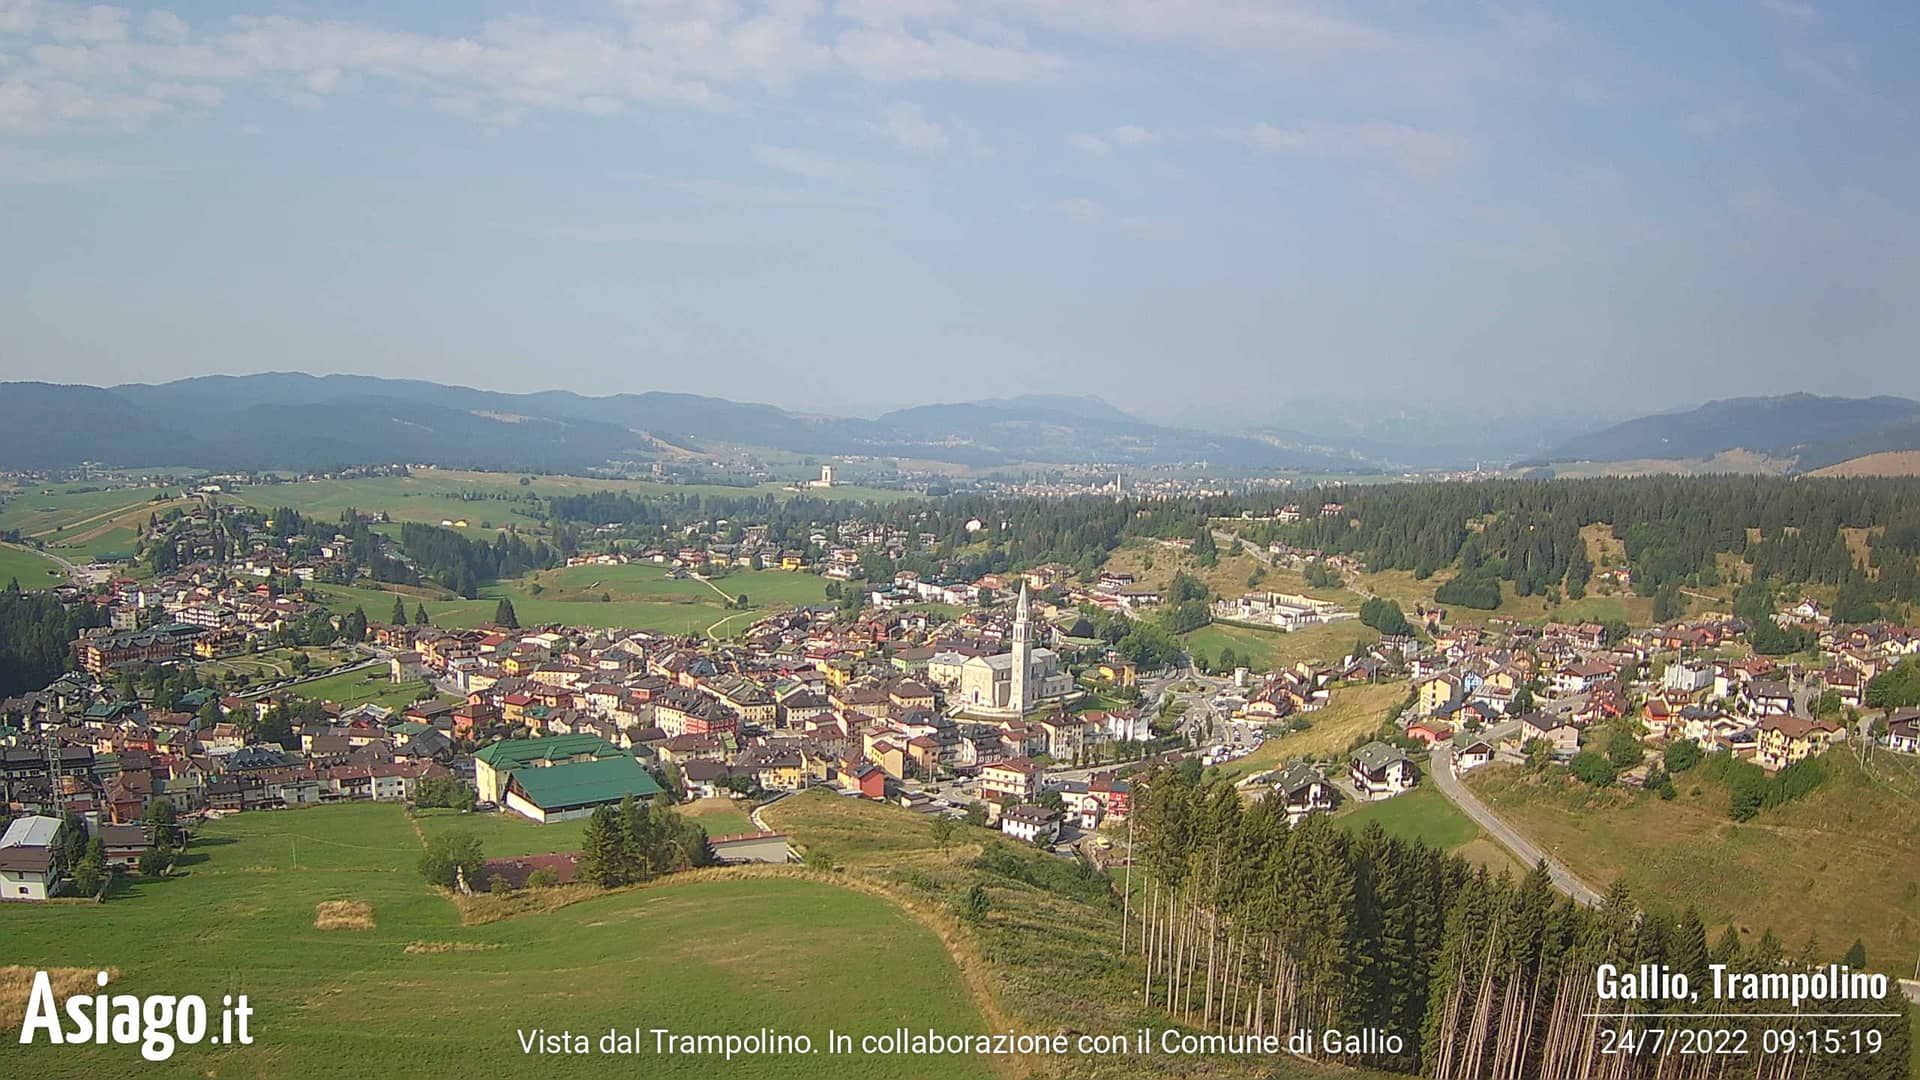 Asiago.It live webcams from Gallio's trampoline